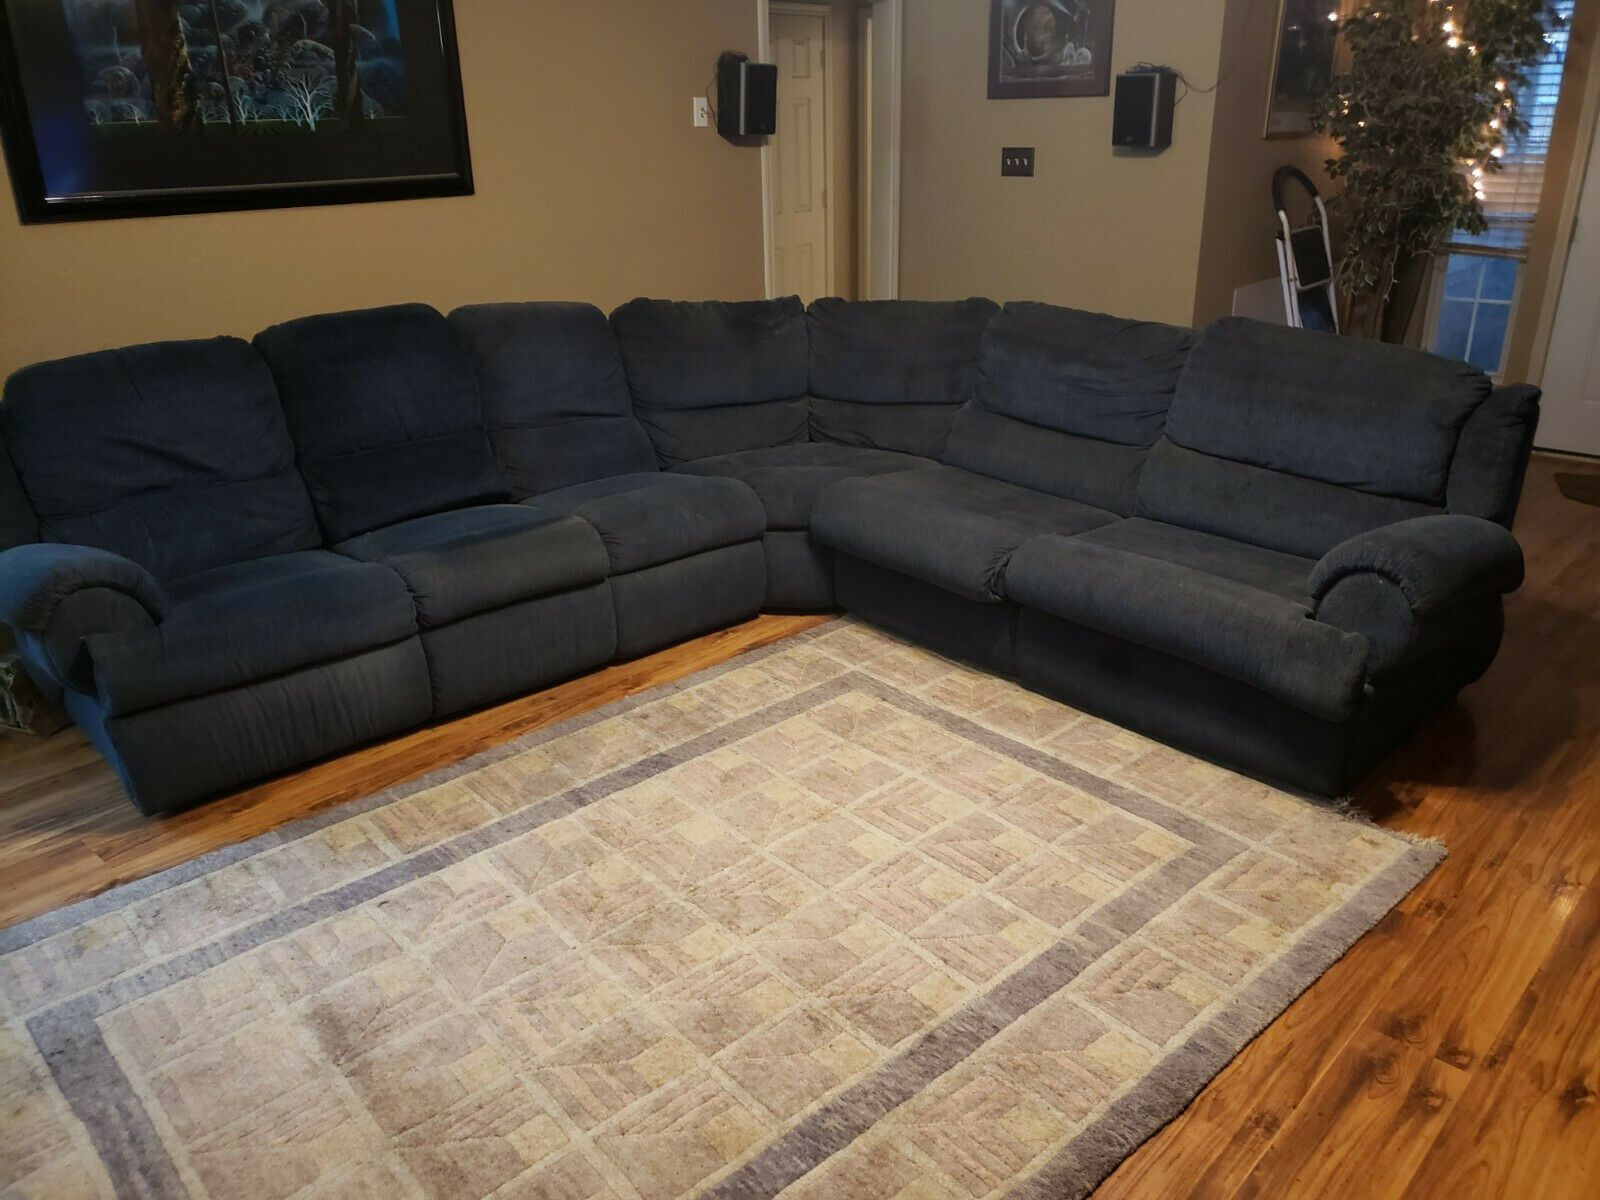 Living Room Furniture Set Sectional Used Lazy Boy Recliners And Hide A Bed Sofas Living Room Ide In 2020 Living Room Sofa Living Room Sets Furniture Lazy Boy Sofas